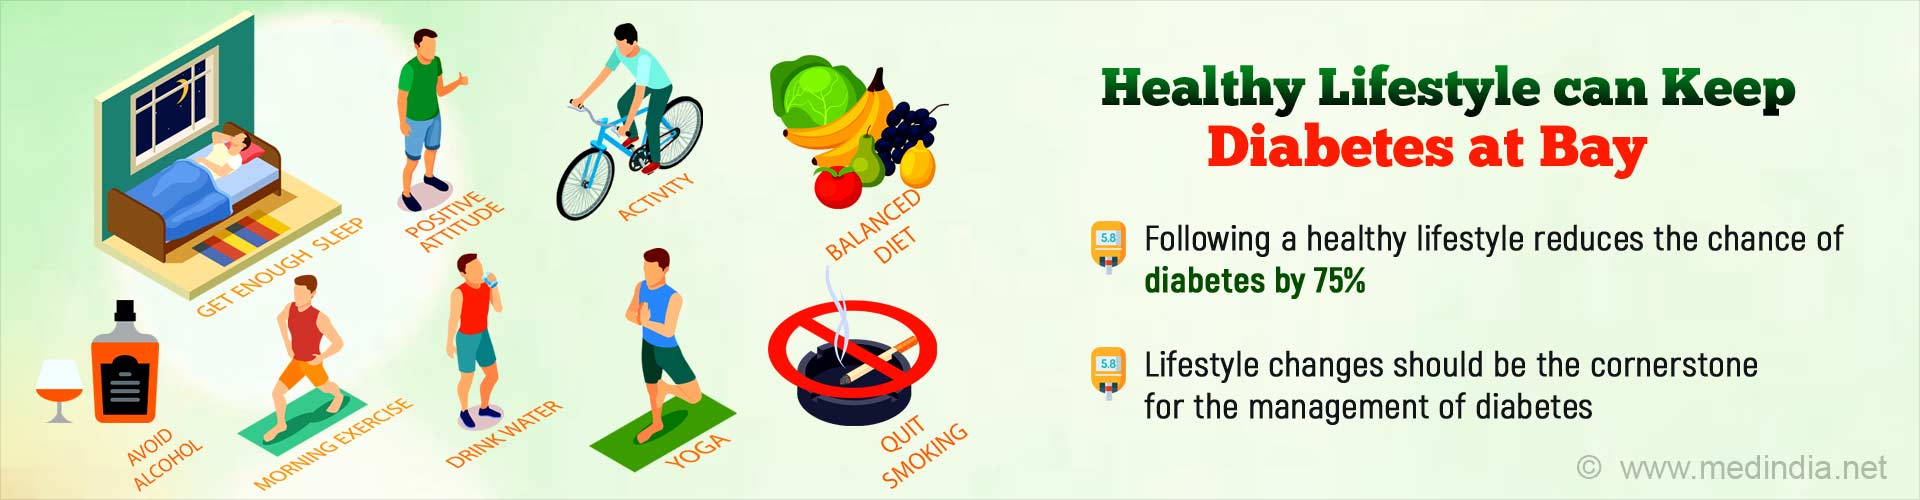 Healthy lifestyle can keep diabetes at bay. Following a healthy lifestyle reduces the chance of diabetes by 75%. Lifestyle changes should be the cornerstone for the management of diabetes.